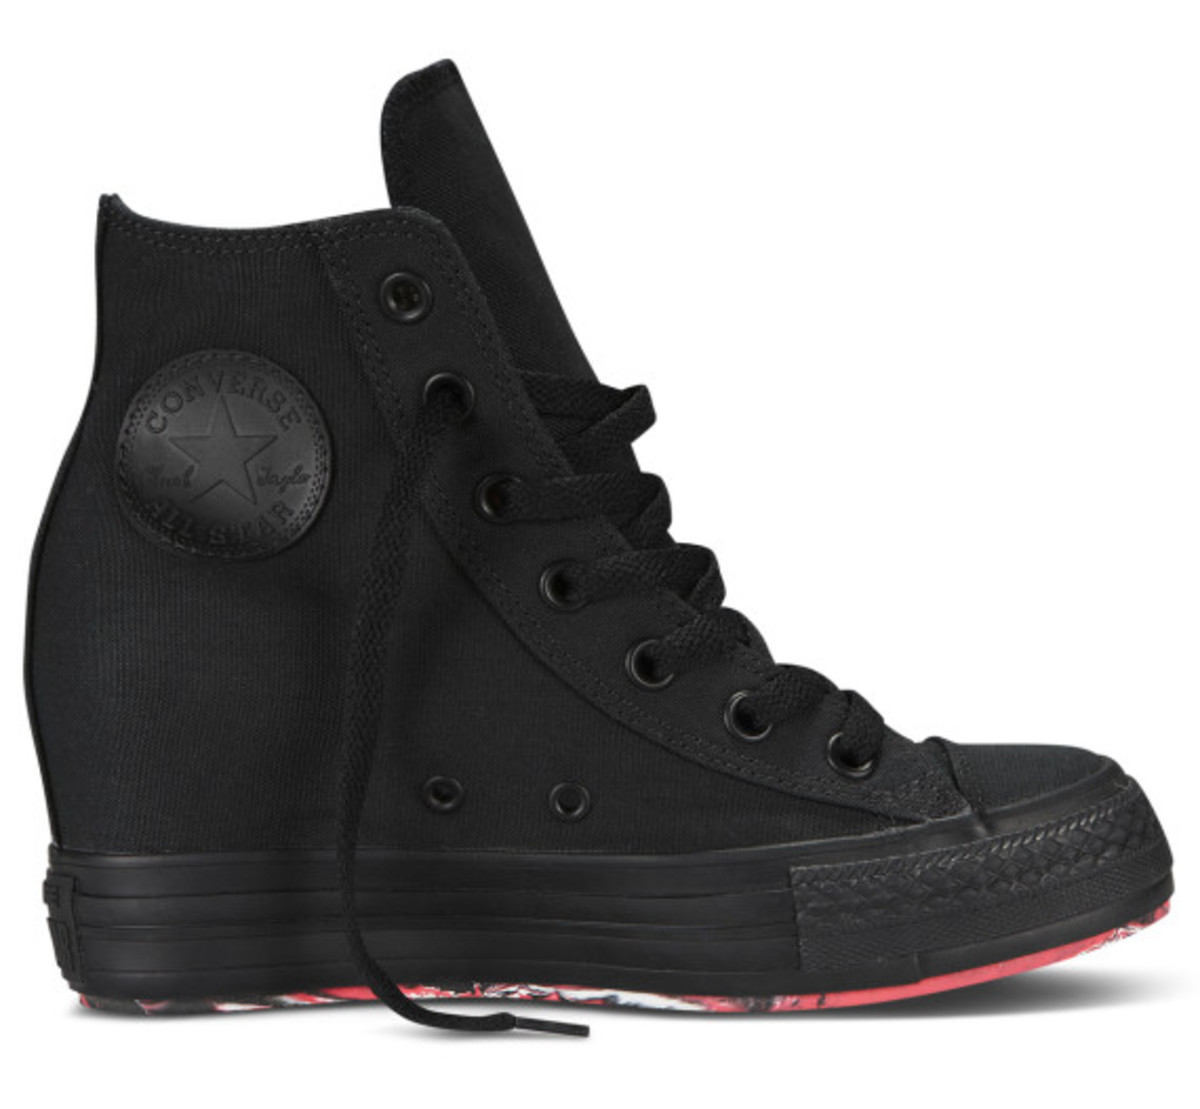 converse-chuck-taylor-all-star-spring-2014-collection-08